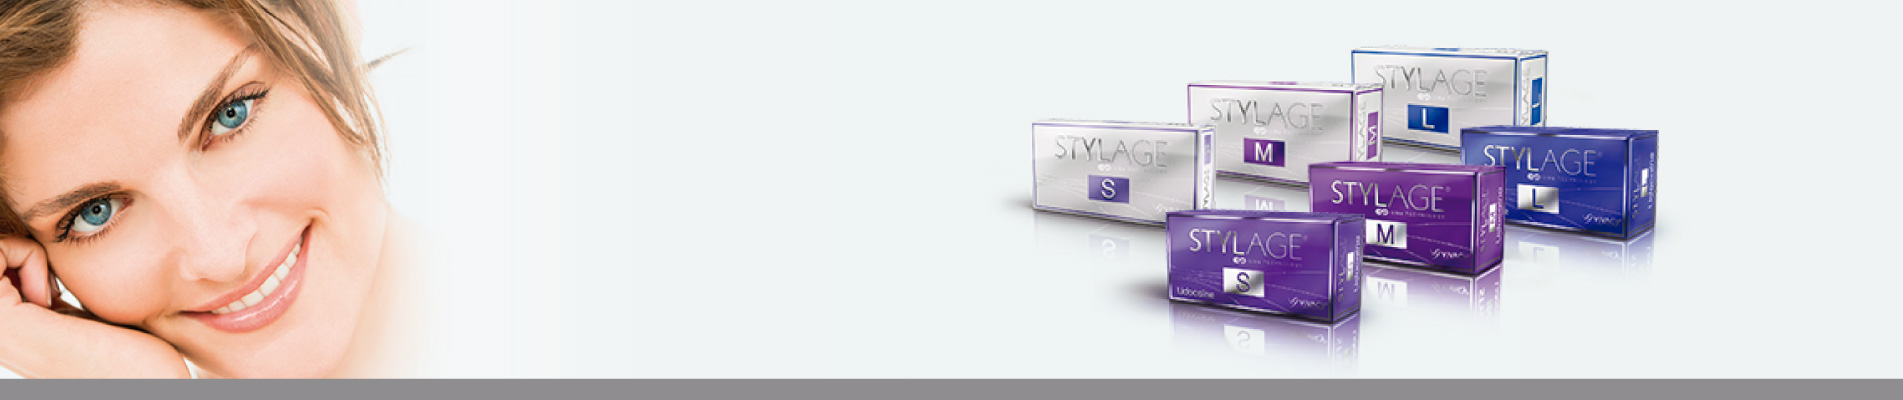 stylage banner